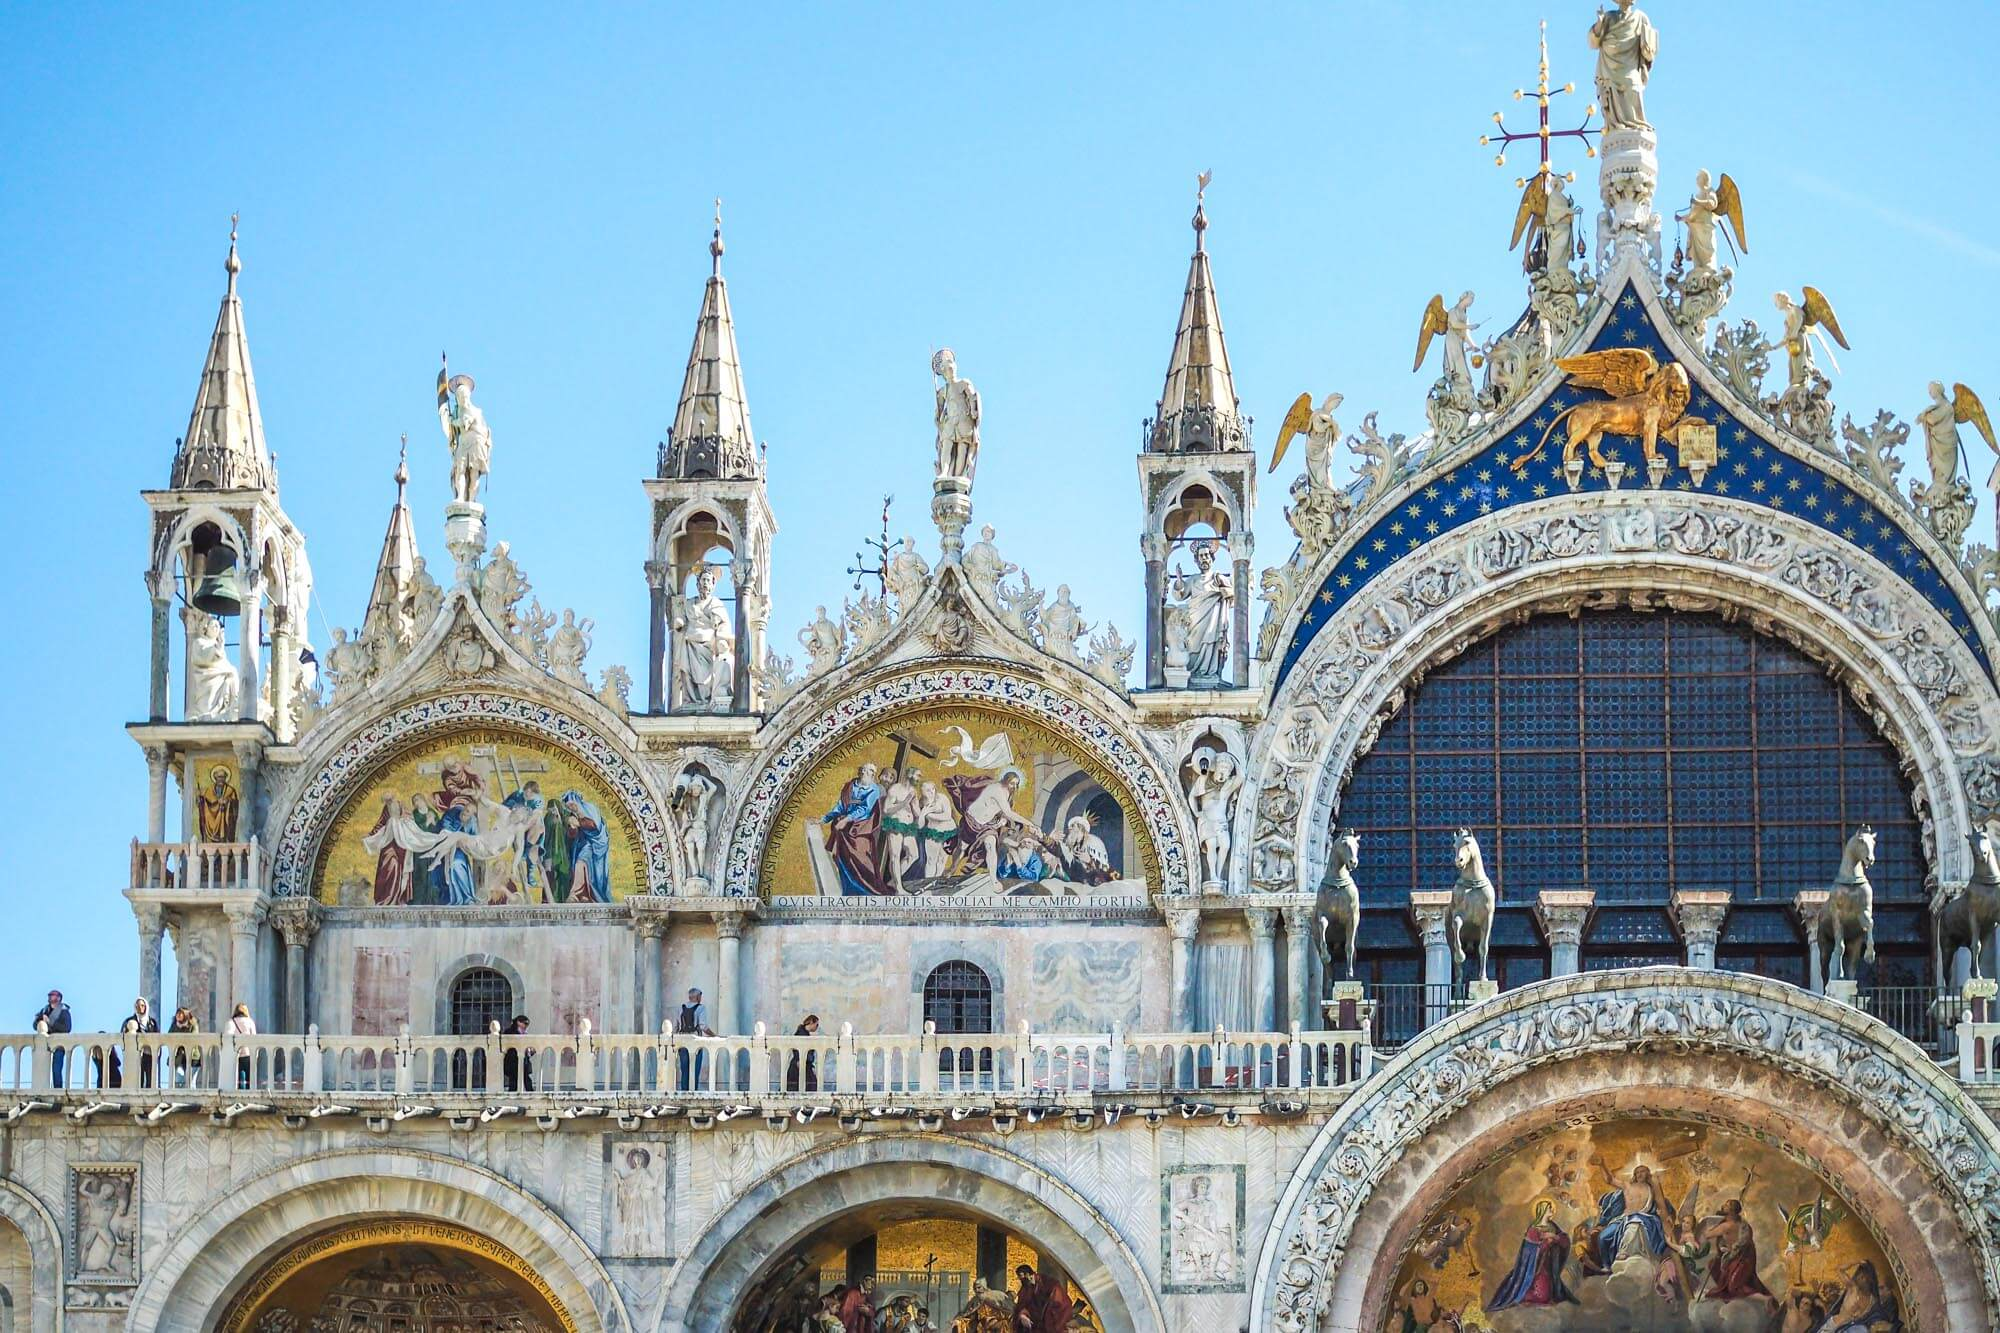 Basilica, Venice - Travel photographer